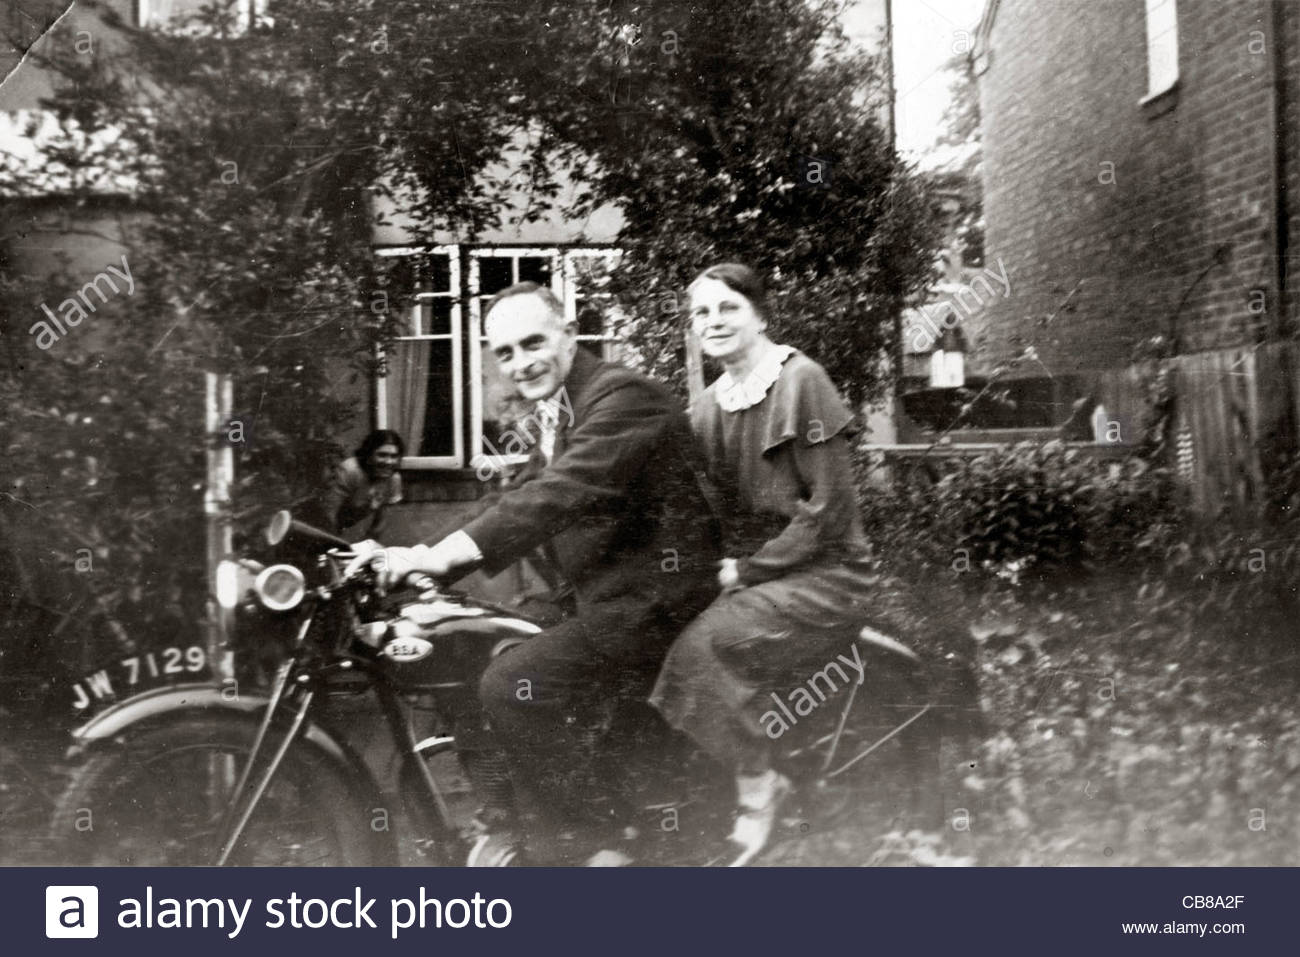 elderly couple in front of a house sitting on a motorcycle - Stock Image